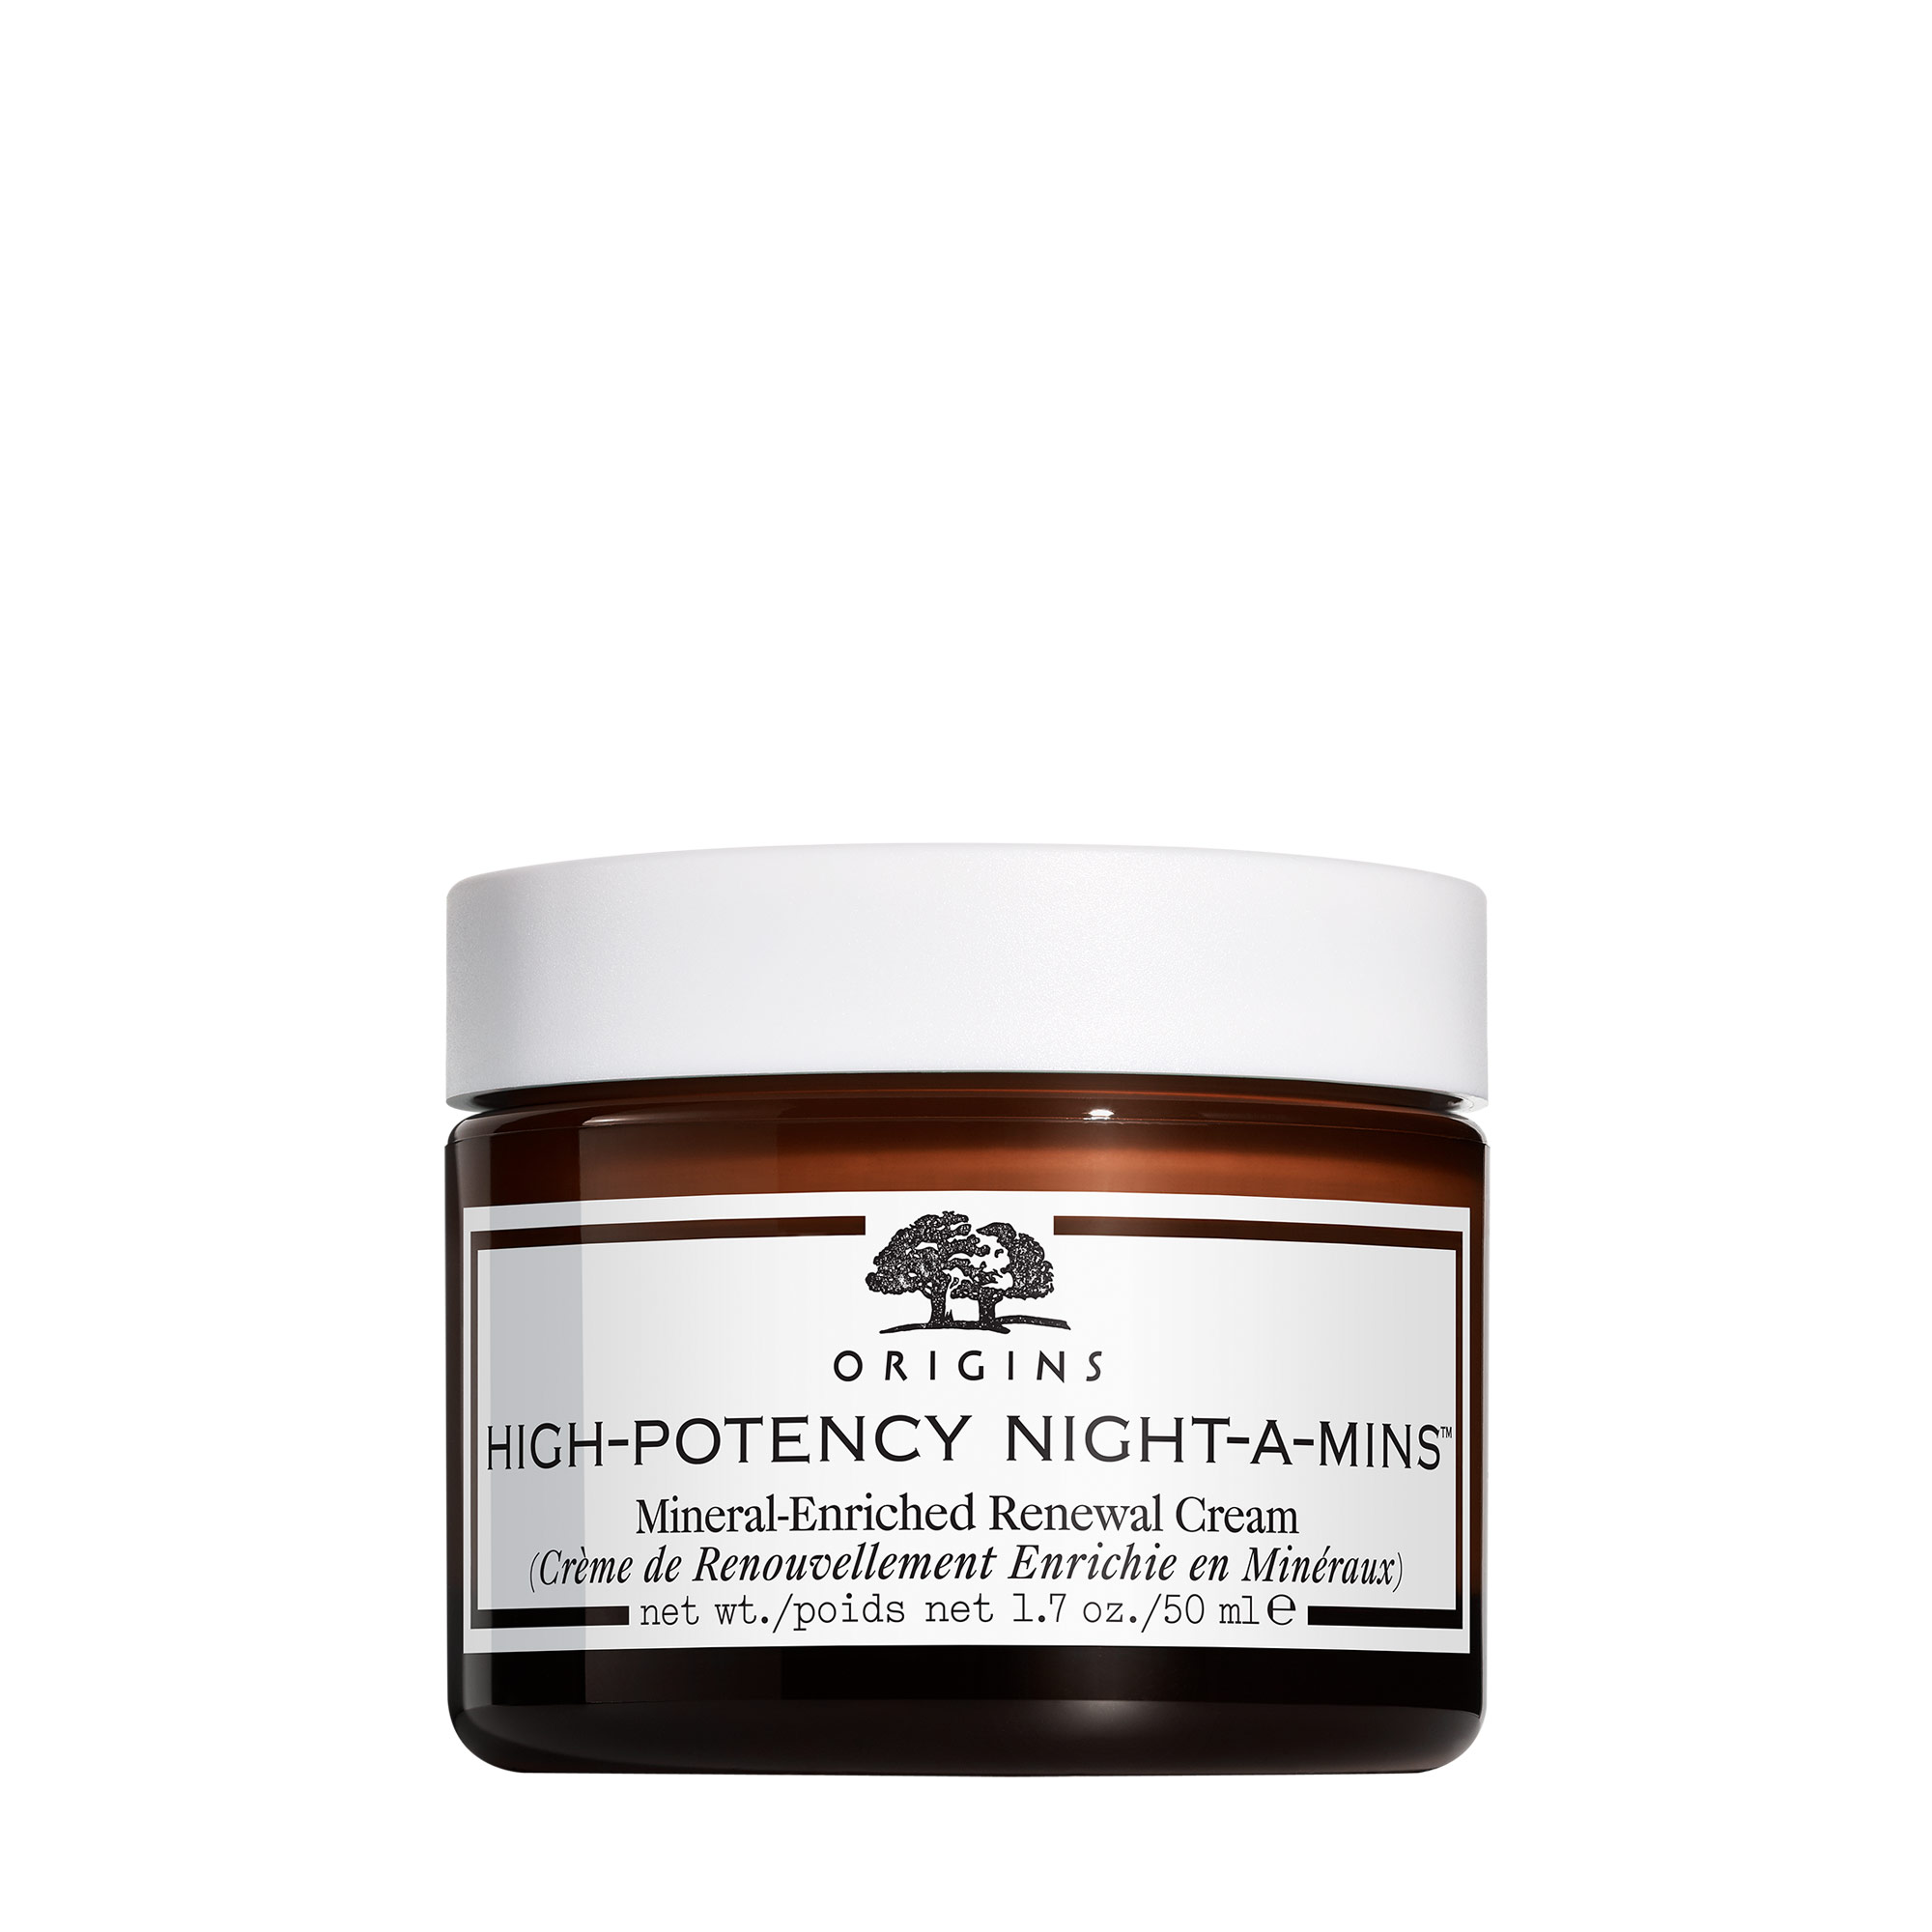 High-Potency Night-A-Mins Mineral-enriched Renewal Cream